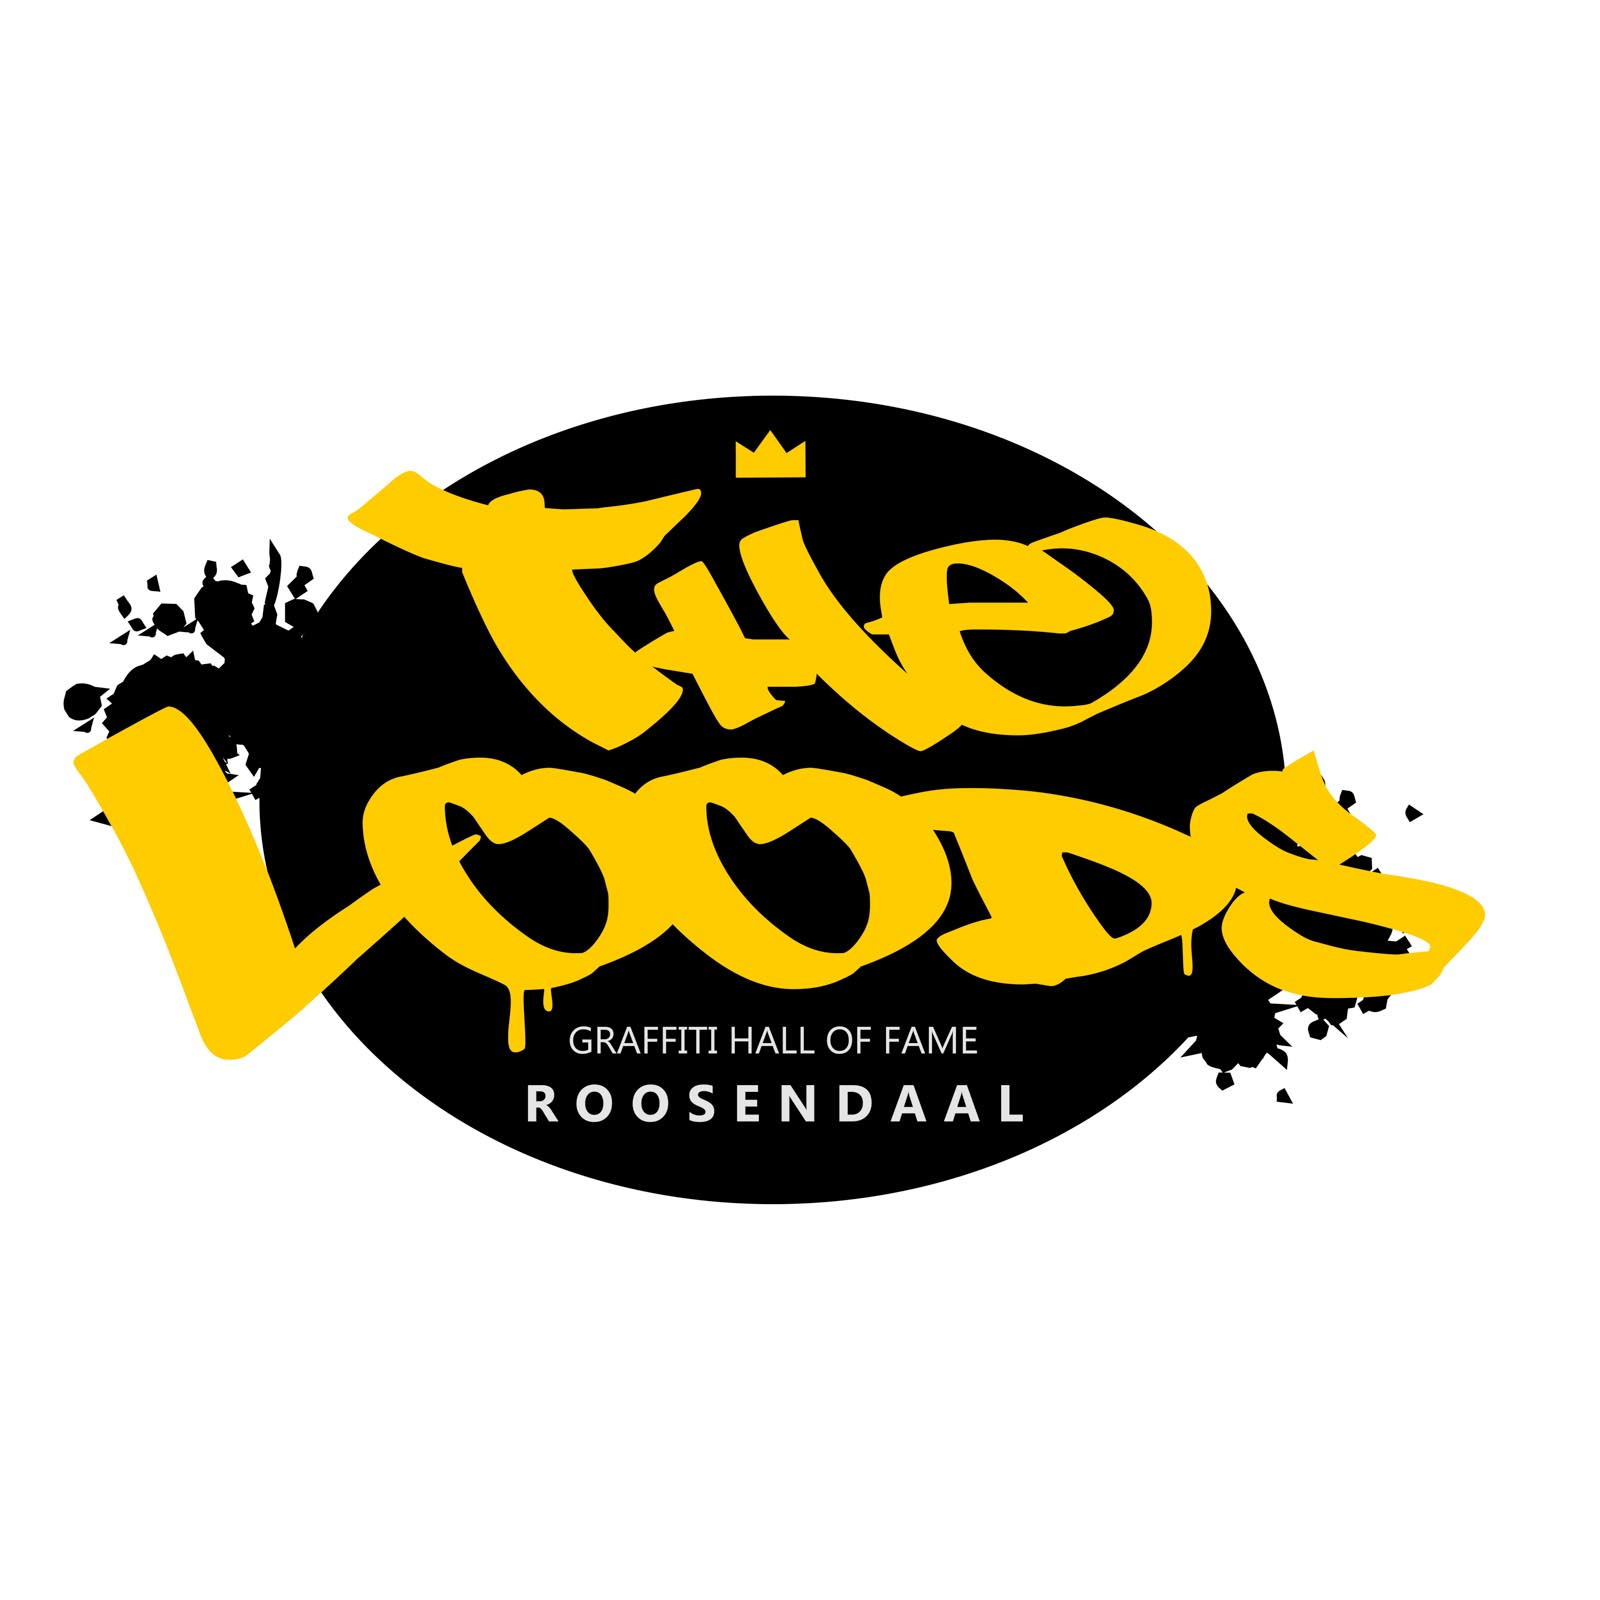 Logo van The Loods Hall of Fame Roosendaal